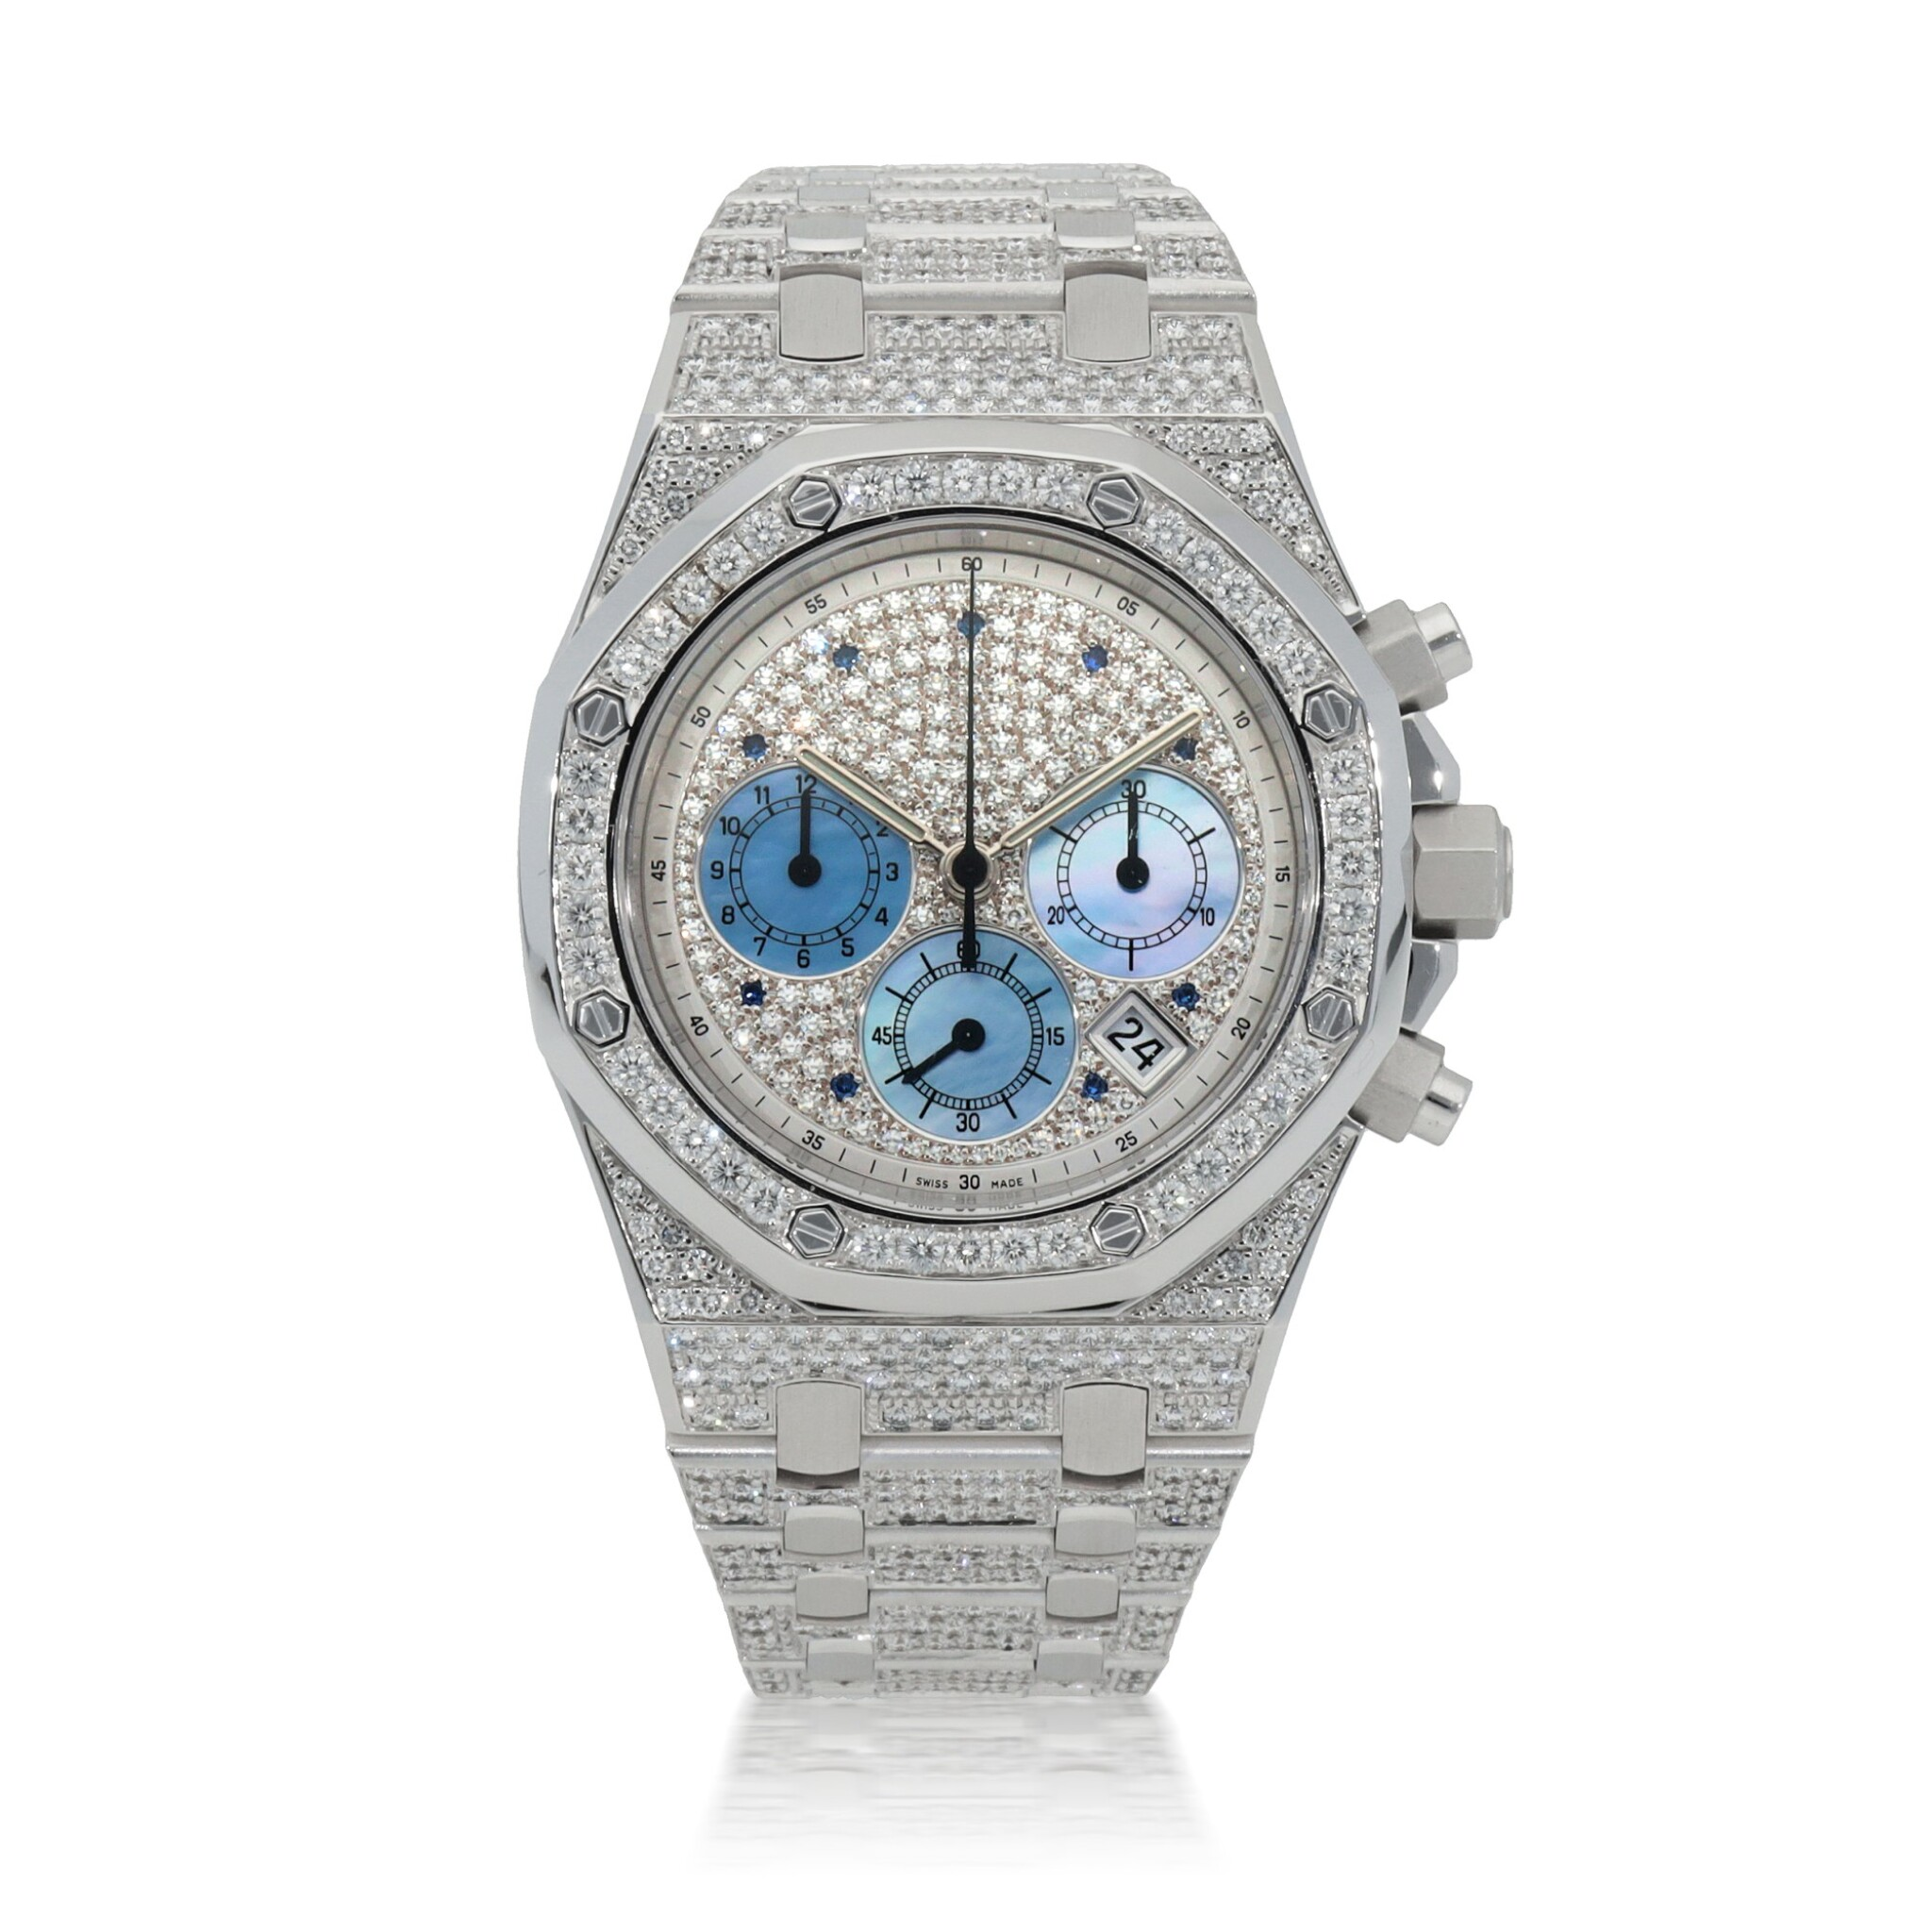 View full screen - View 1 of Lot 50. Royal Oak, Ref. 25967BC White gold, diamond and sapphire-set chronograph wristwatch with date, bracelet and mother of pearl subsidiary dials Made in 2003 | 愛彼25967BC型號「Royal Oak」白金鑲鑽石及藍寶石計時鍊帶腕錶,備日期顯示及珠母貝小錶盤,2003年製.